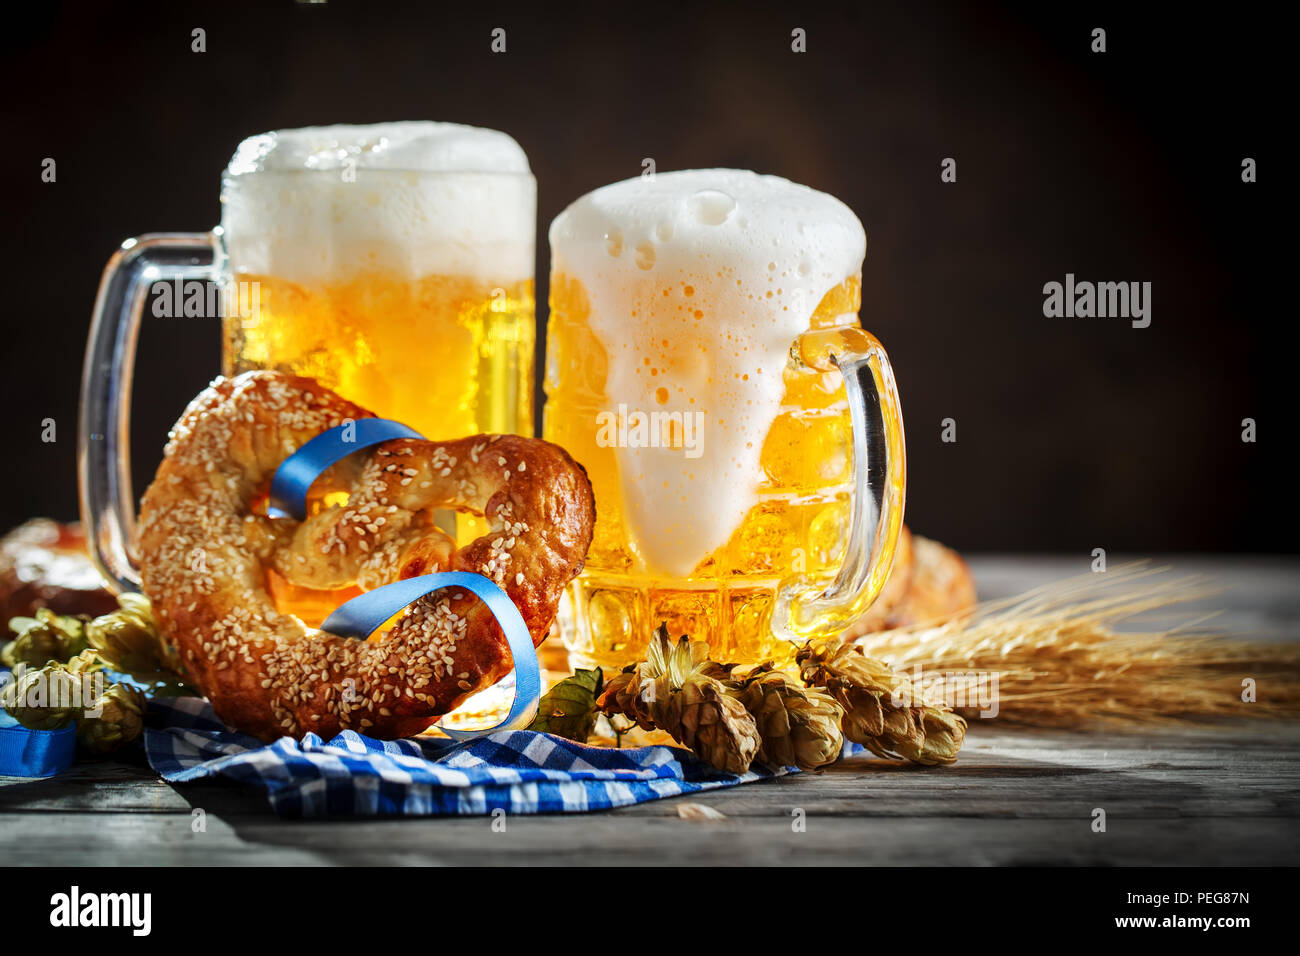 Beer mugs and pretzels on a wooden